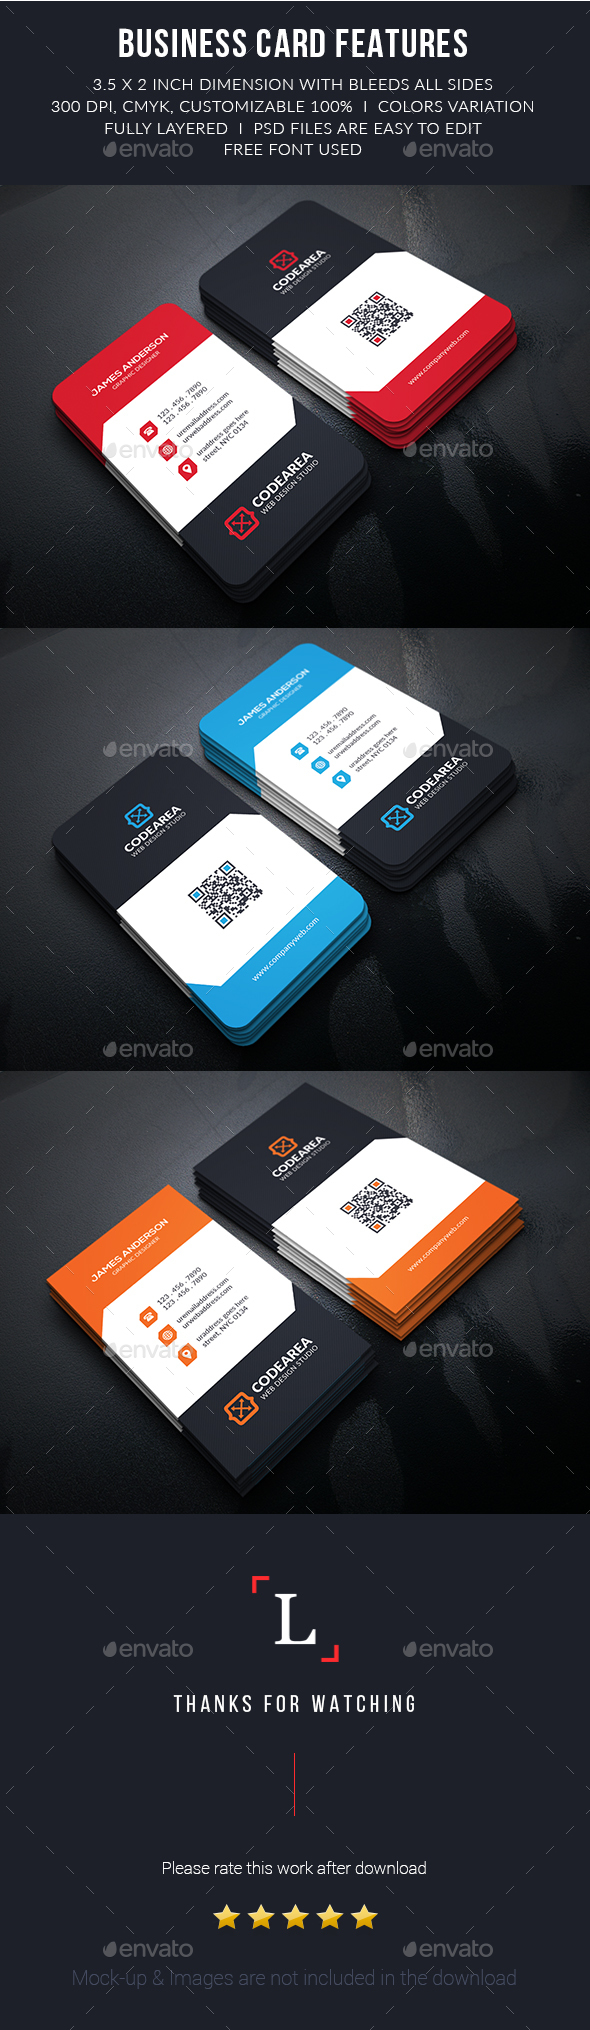 Soft Business Cards - Business Cards Print Templates